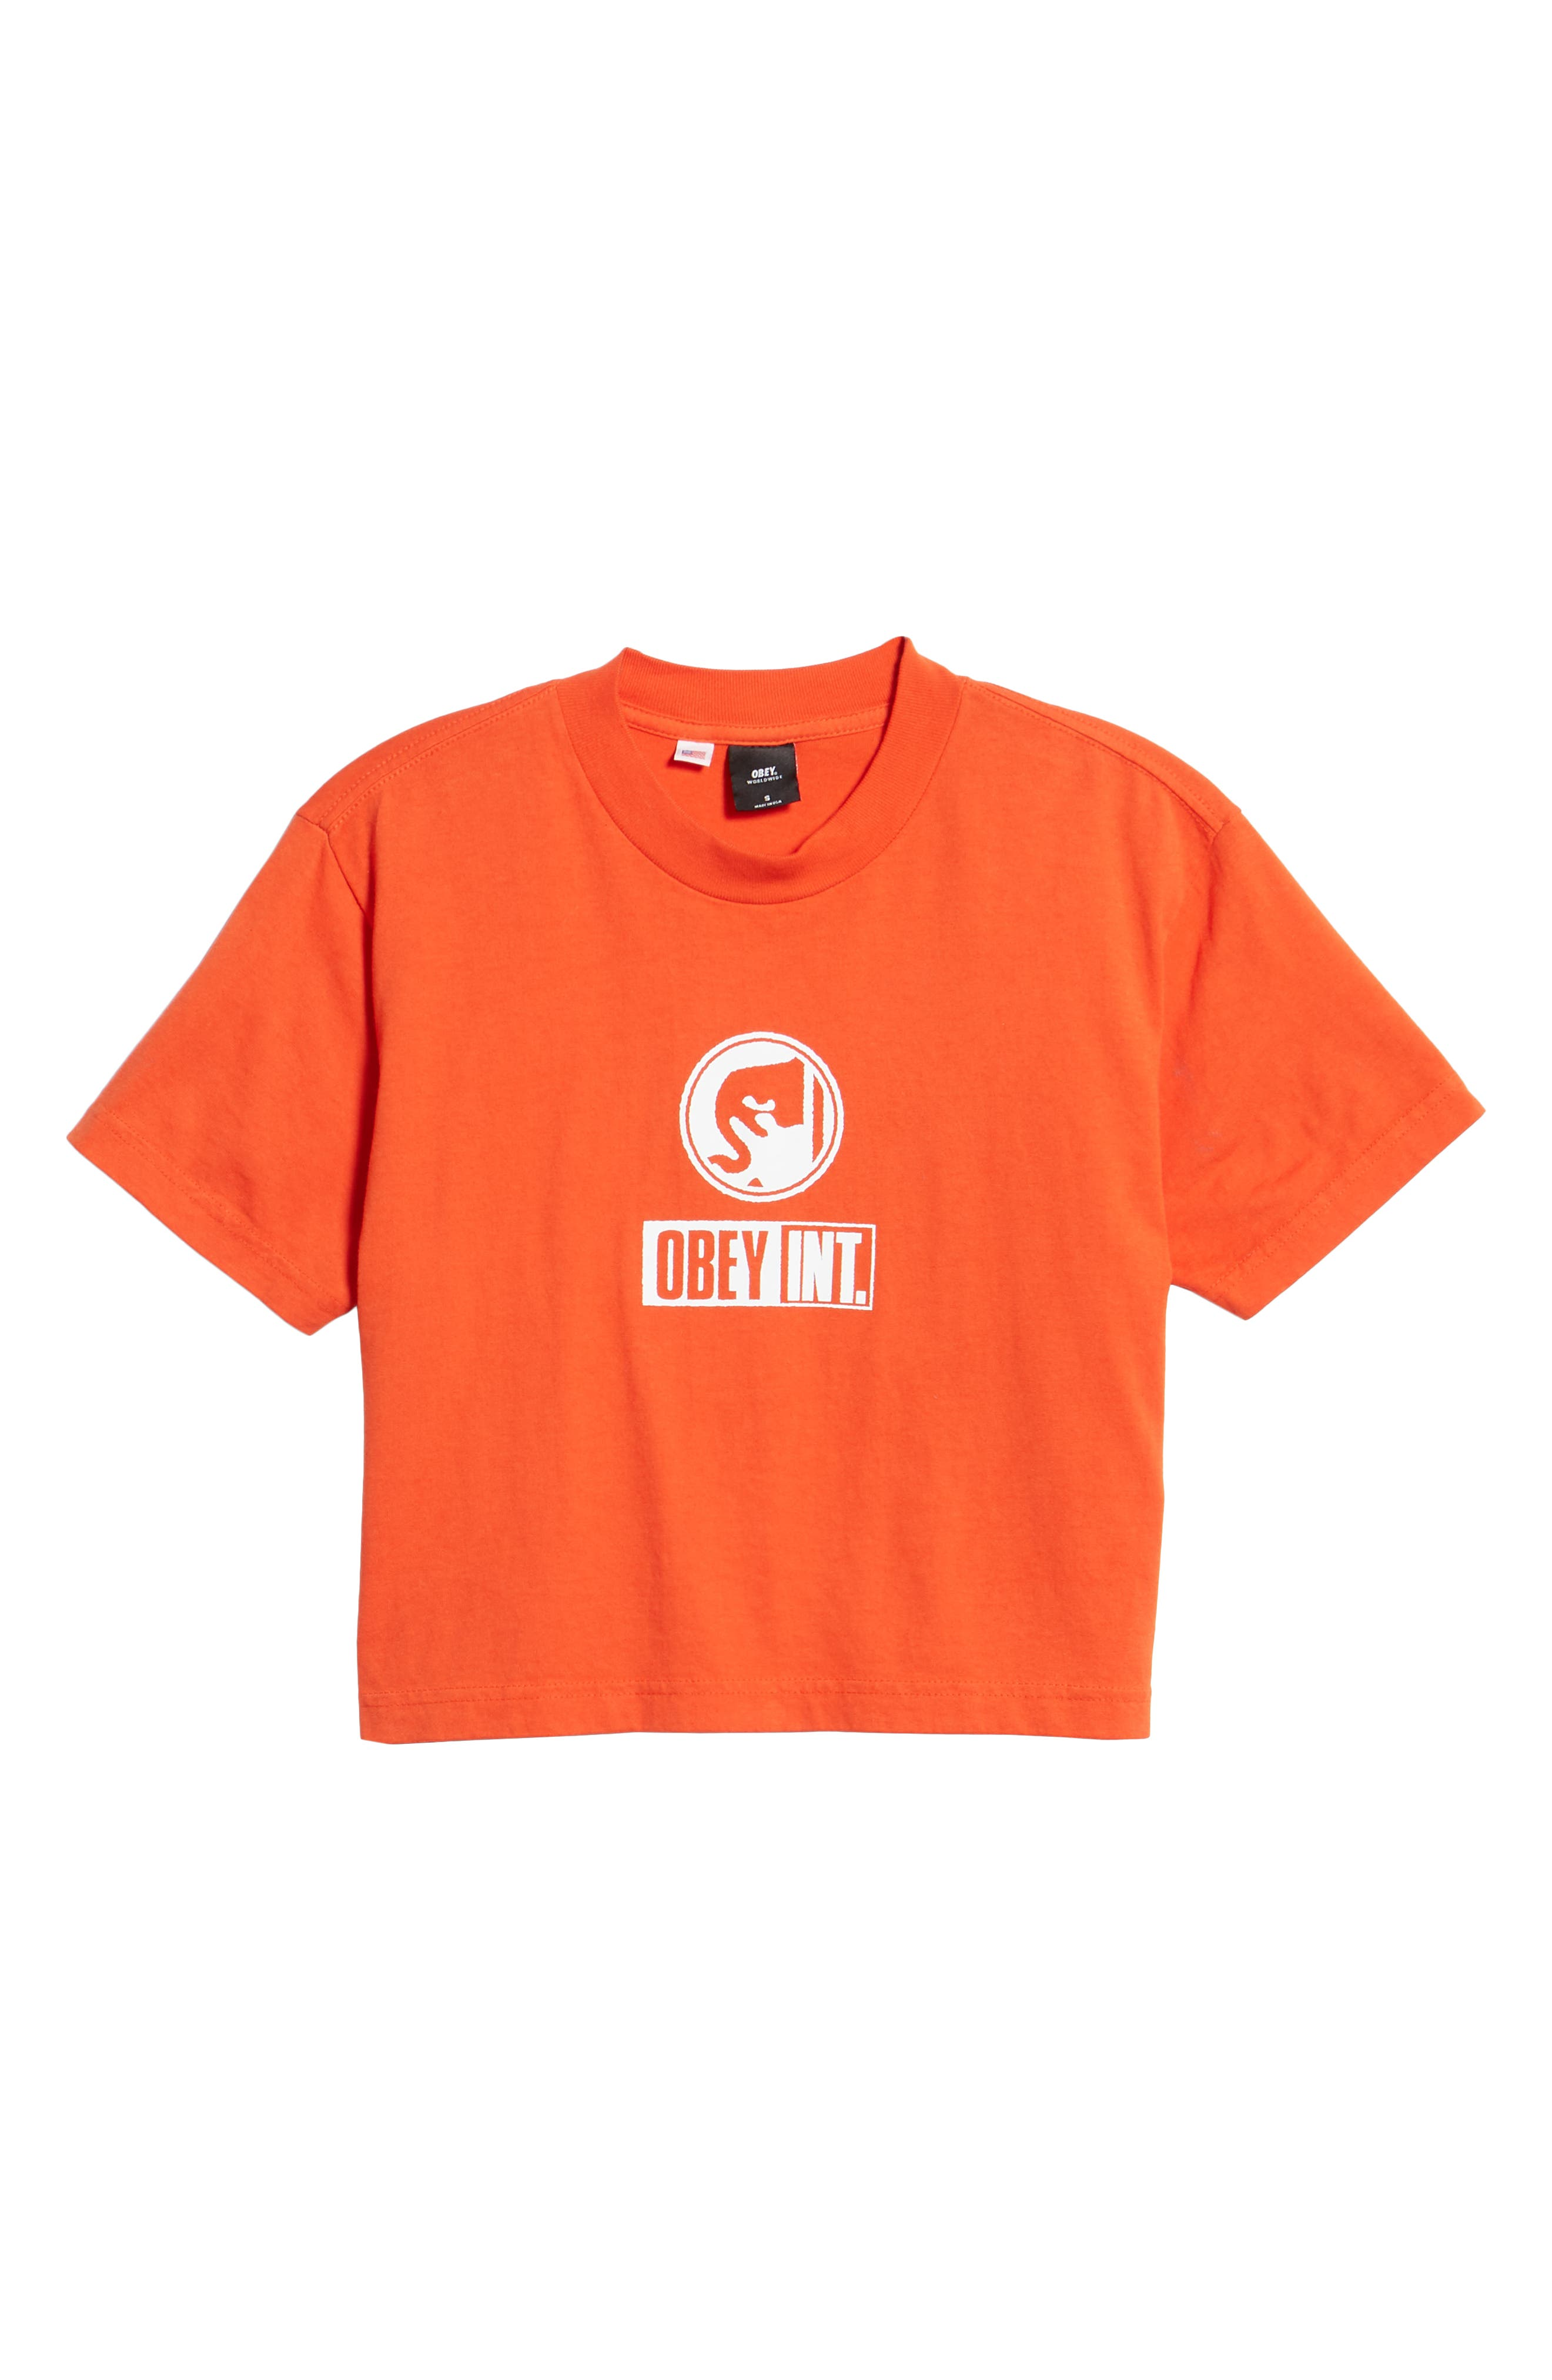 Int. Icon Crop Tee,                             Alternate thumbnail 6, color,                             800